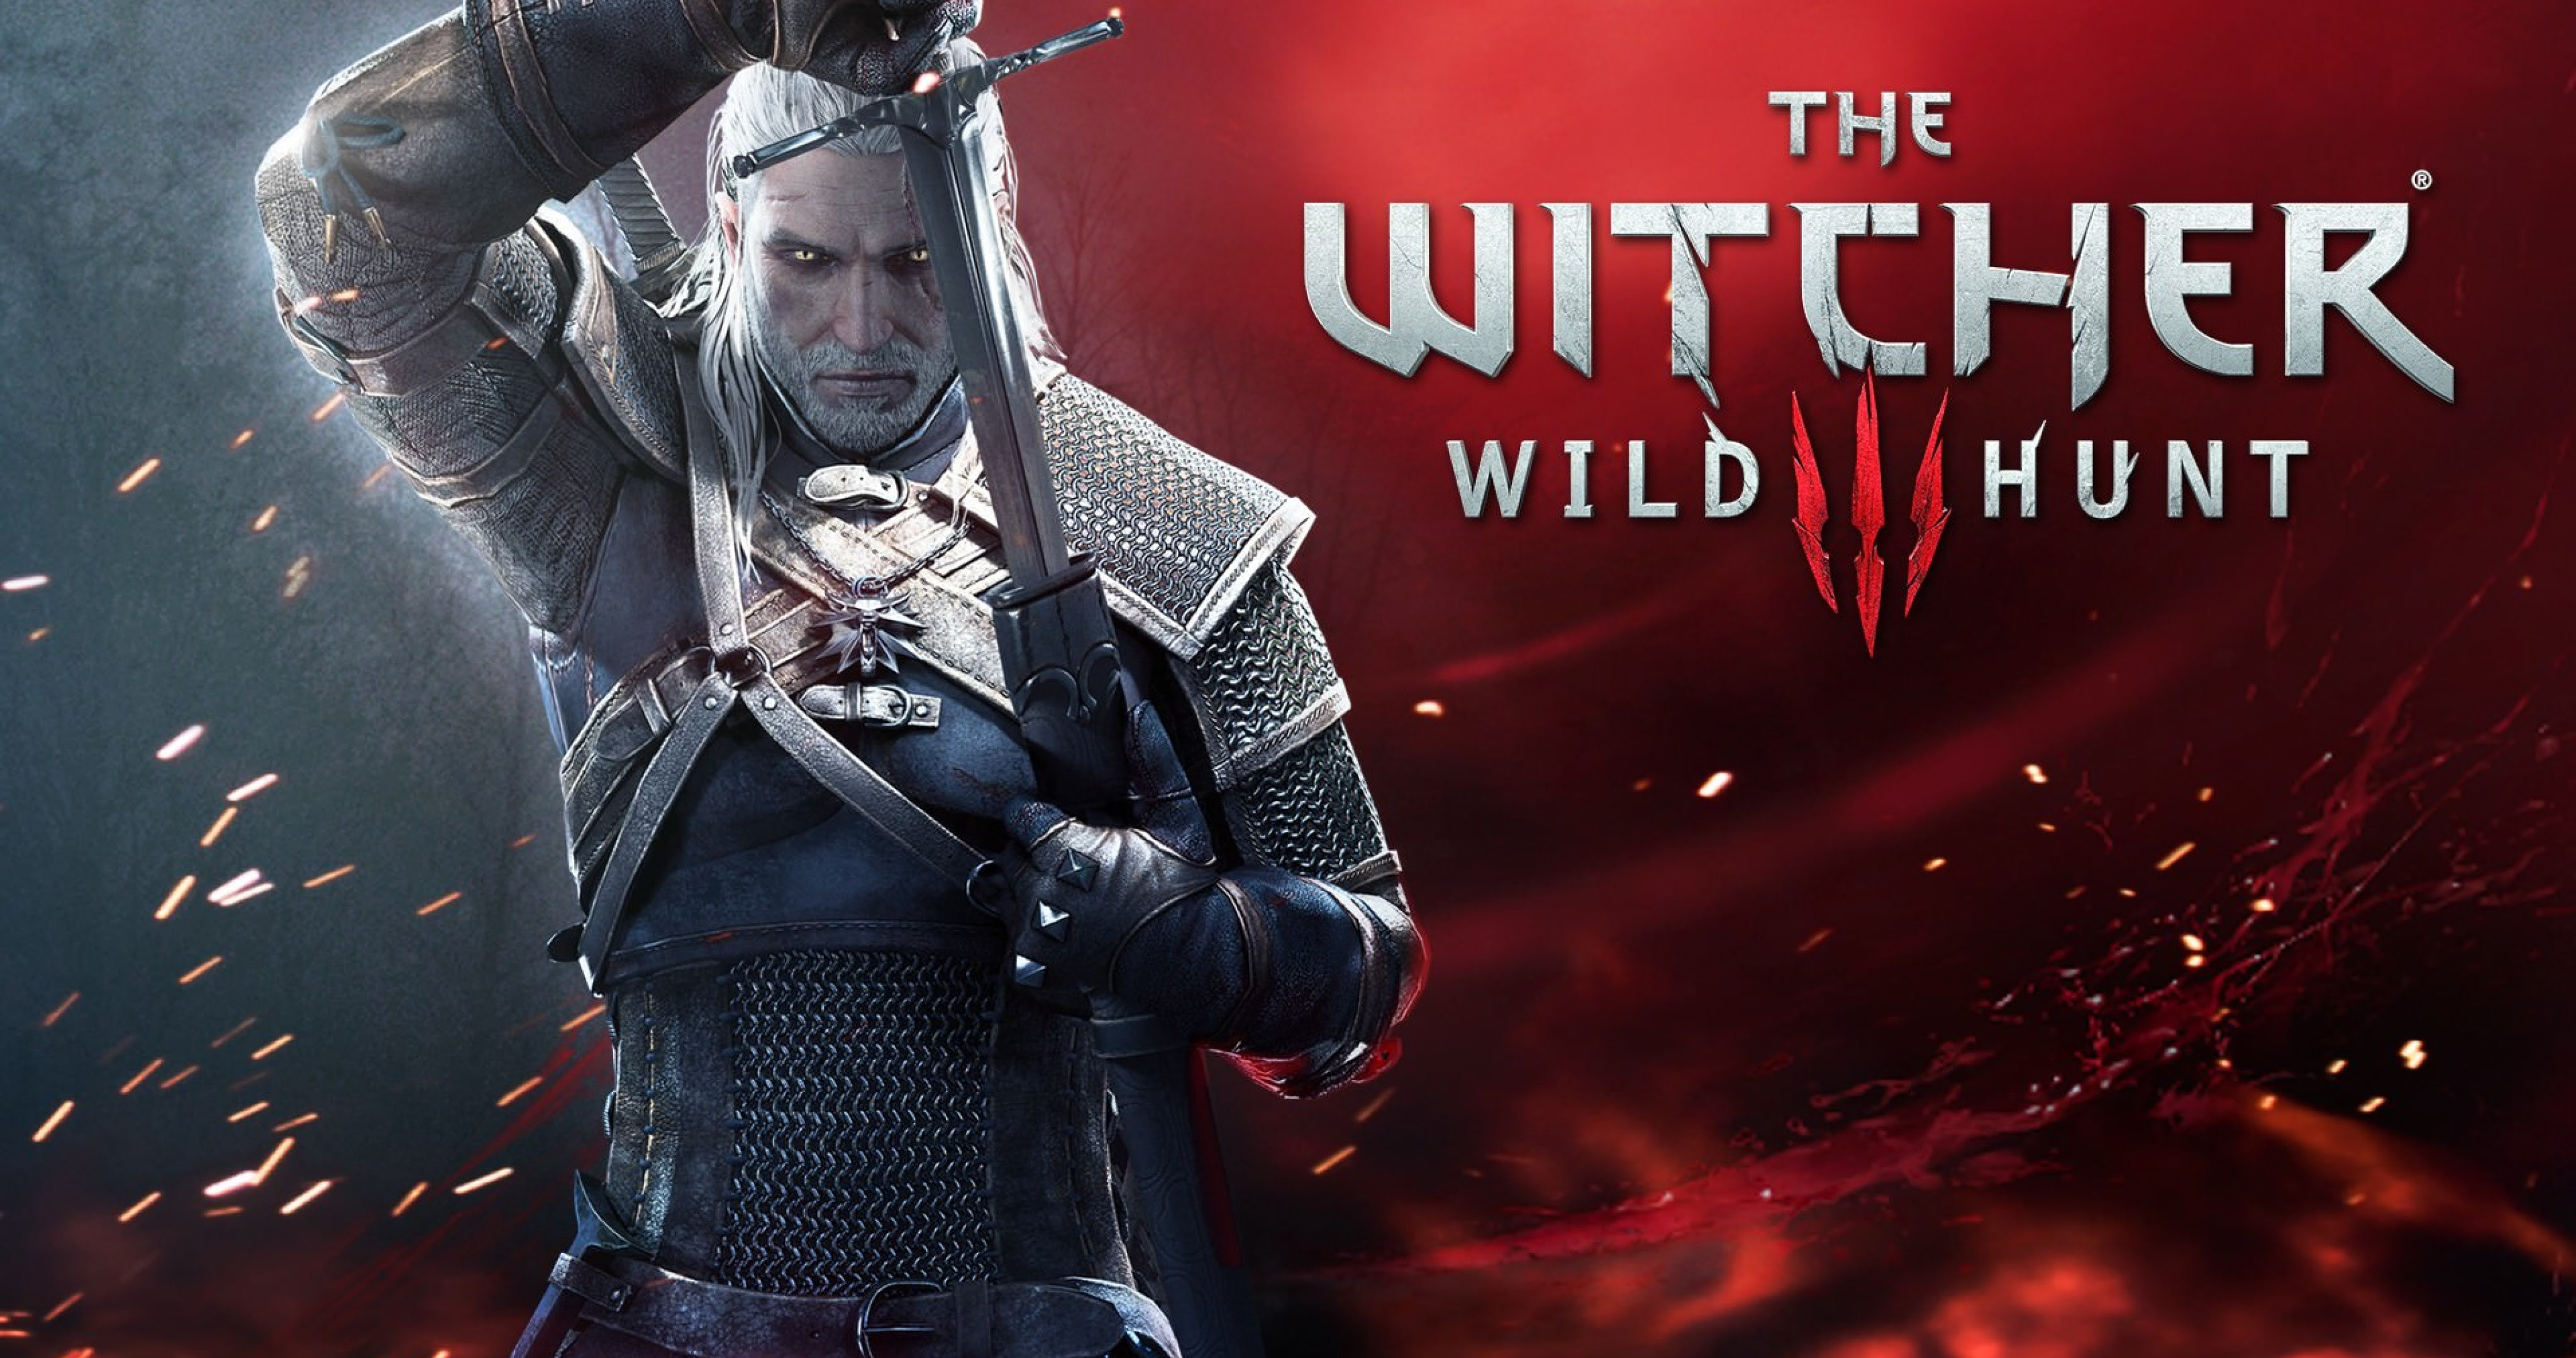 The Witcher 3 Wild Hunt Game 4k Ultra Hd Wallpaper High Quality